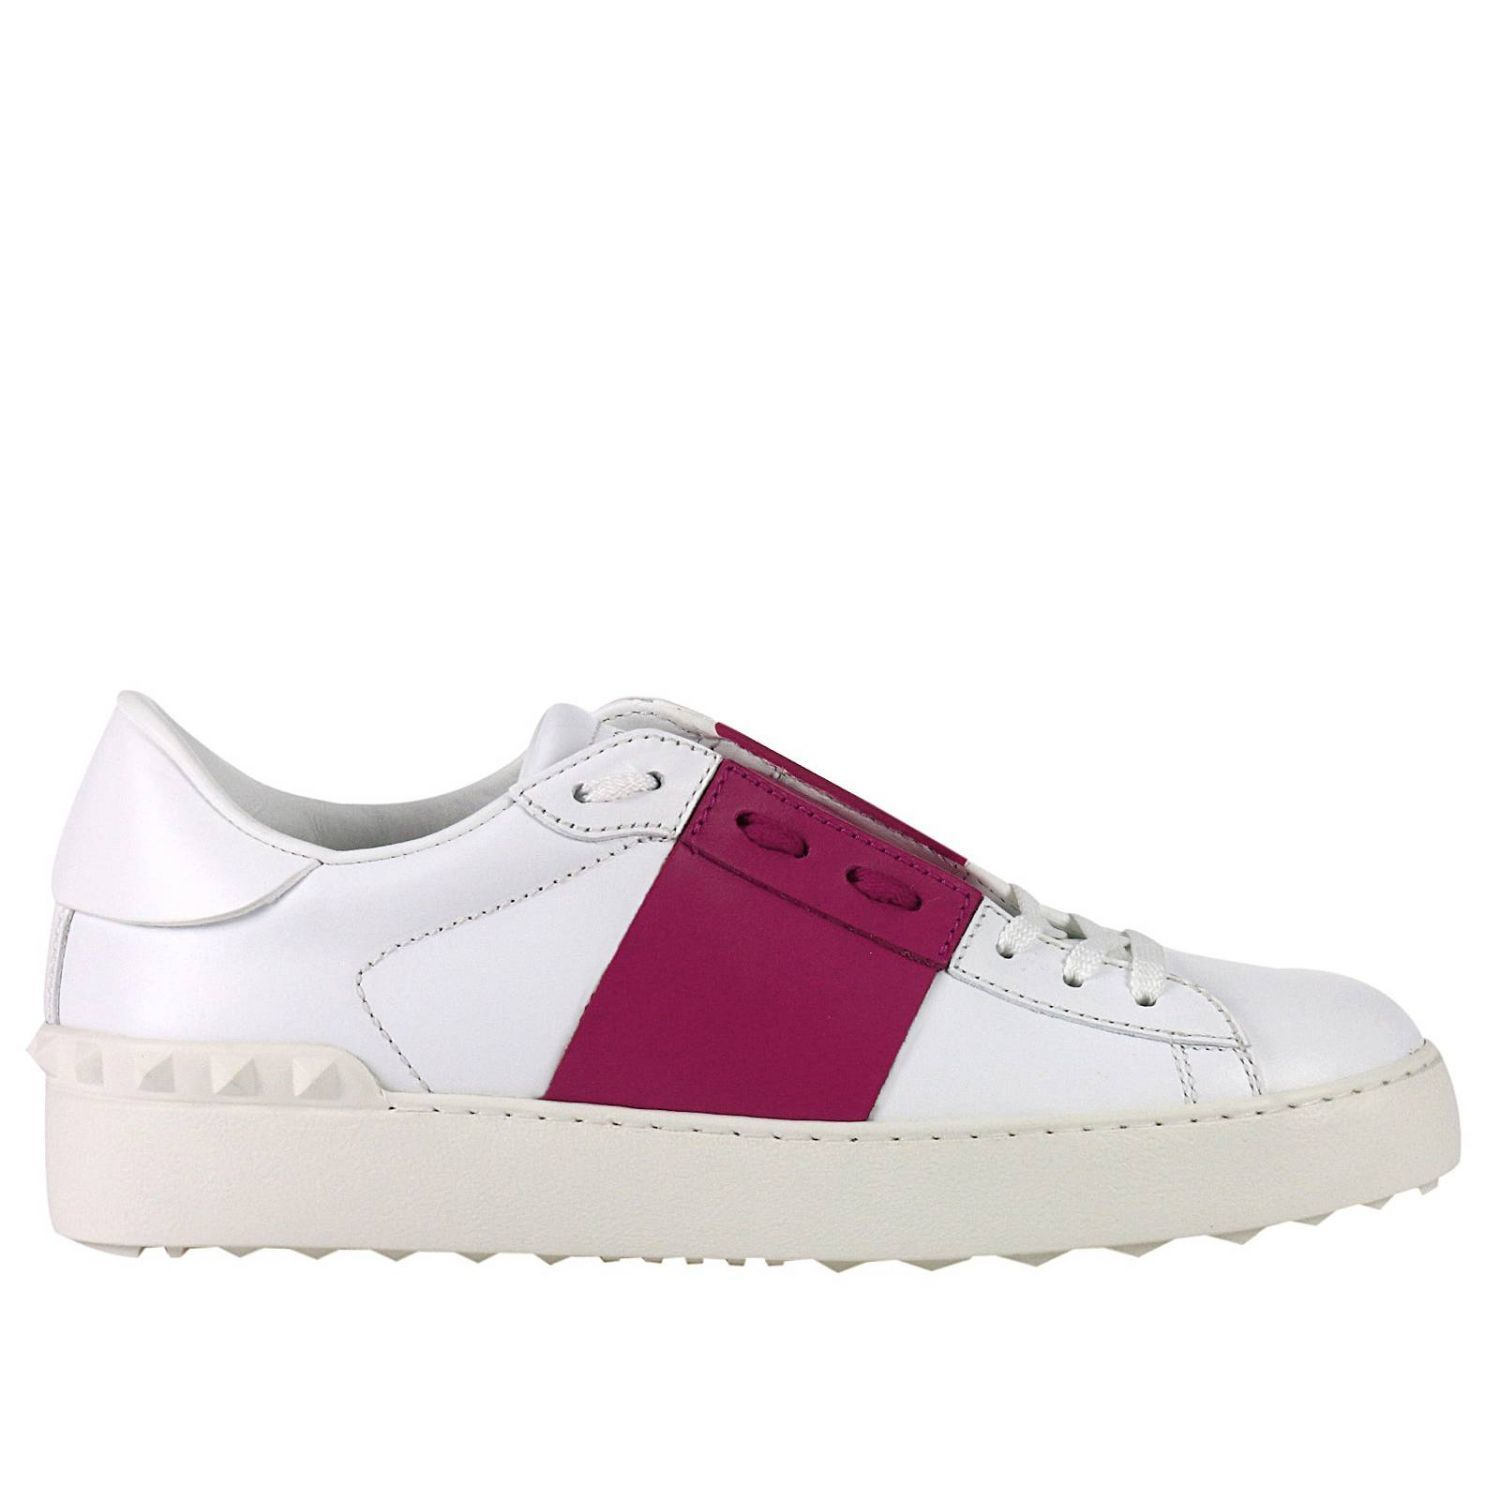 Sneakers Rockstud Open Sneakers With Tone On Tone Studs And Contrast Band